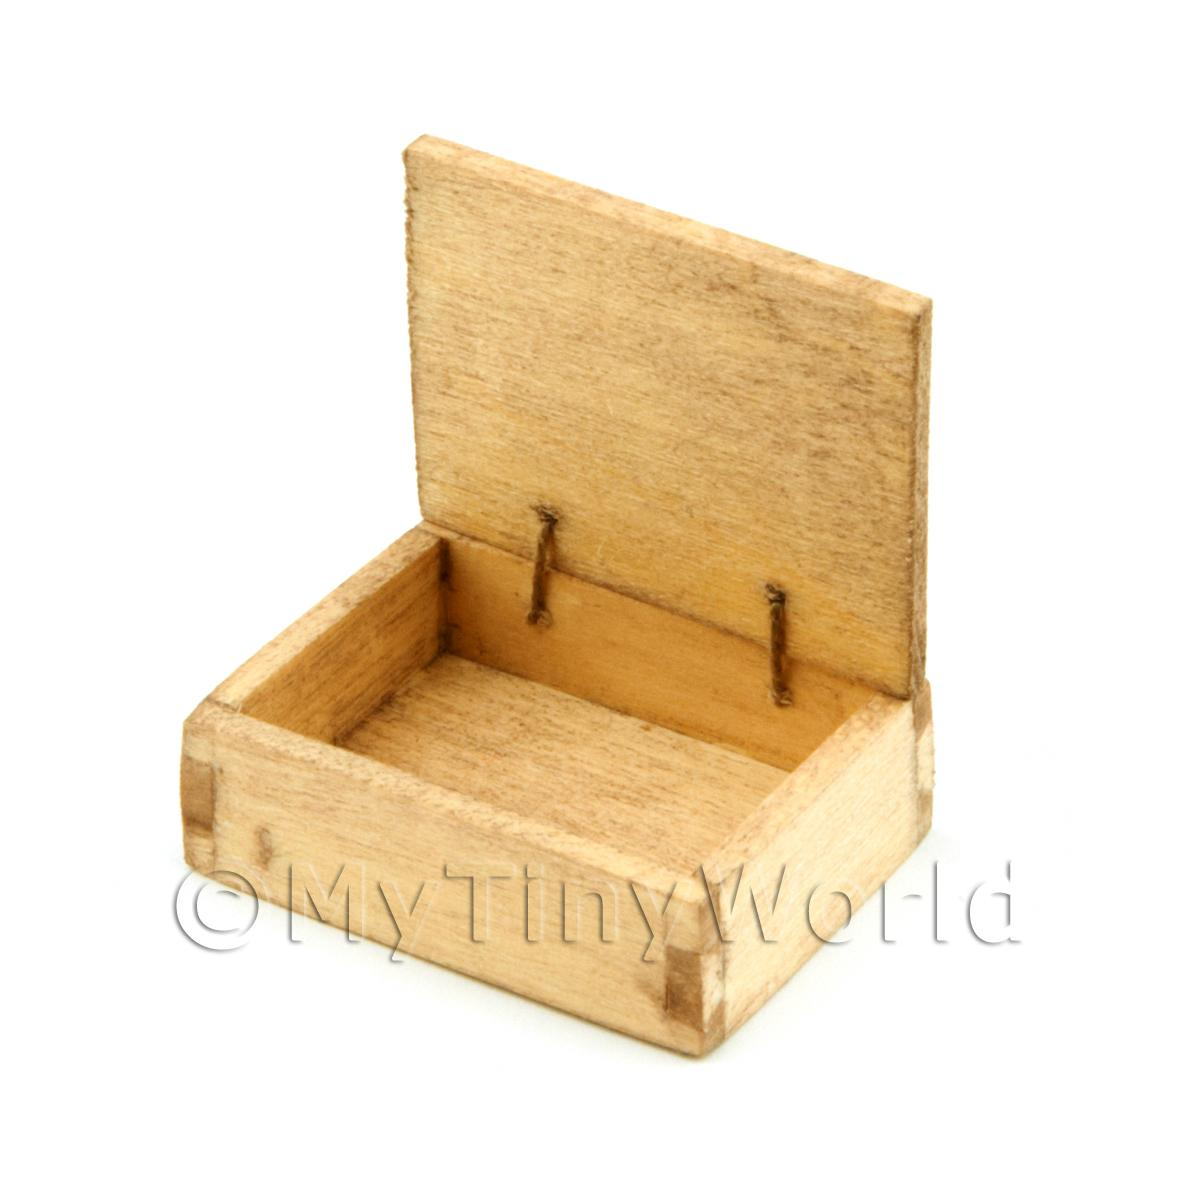 Dolls House Aged Wood Shop Counter Display Box